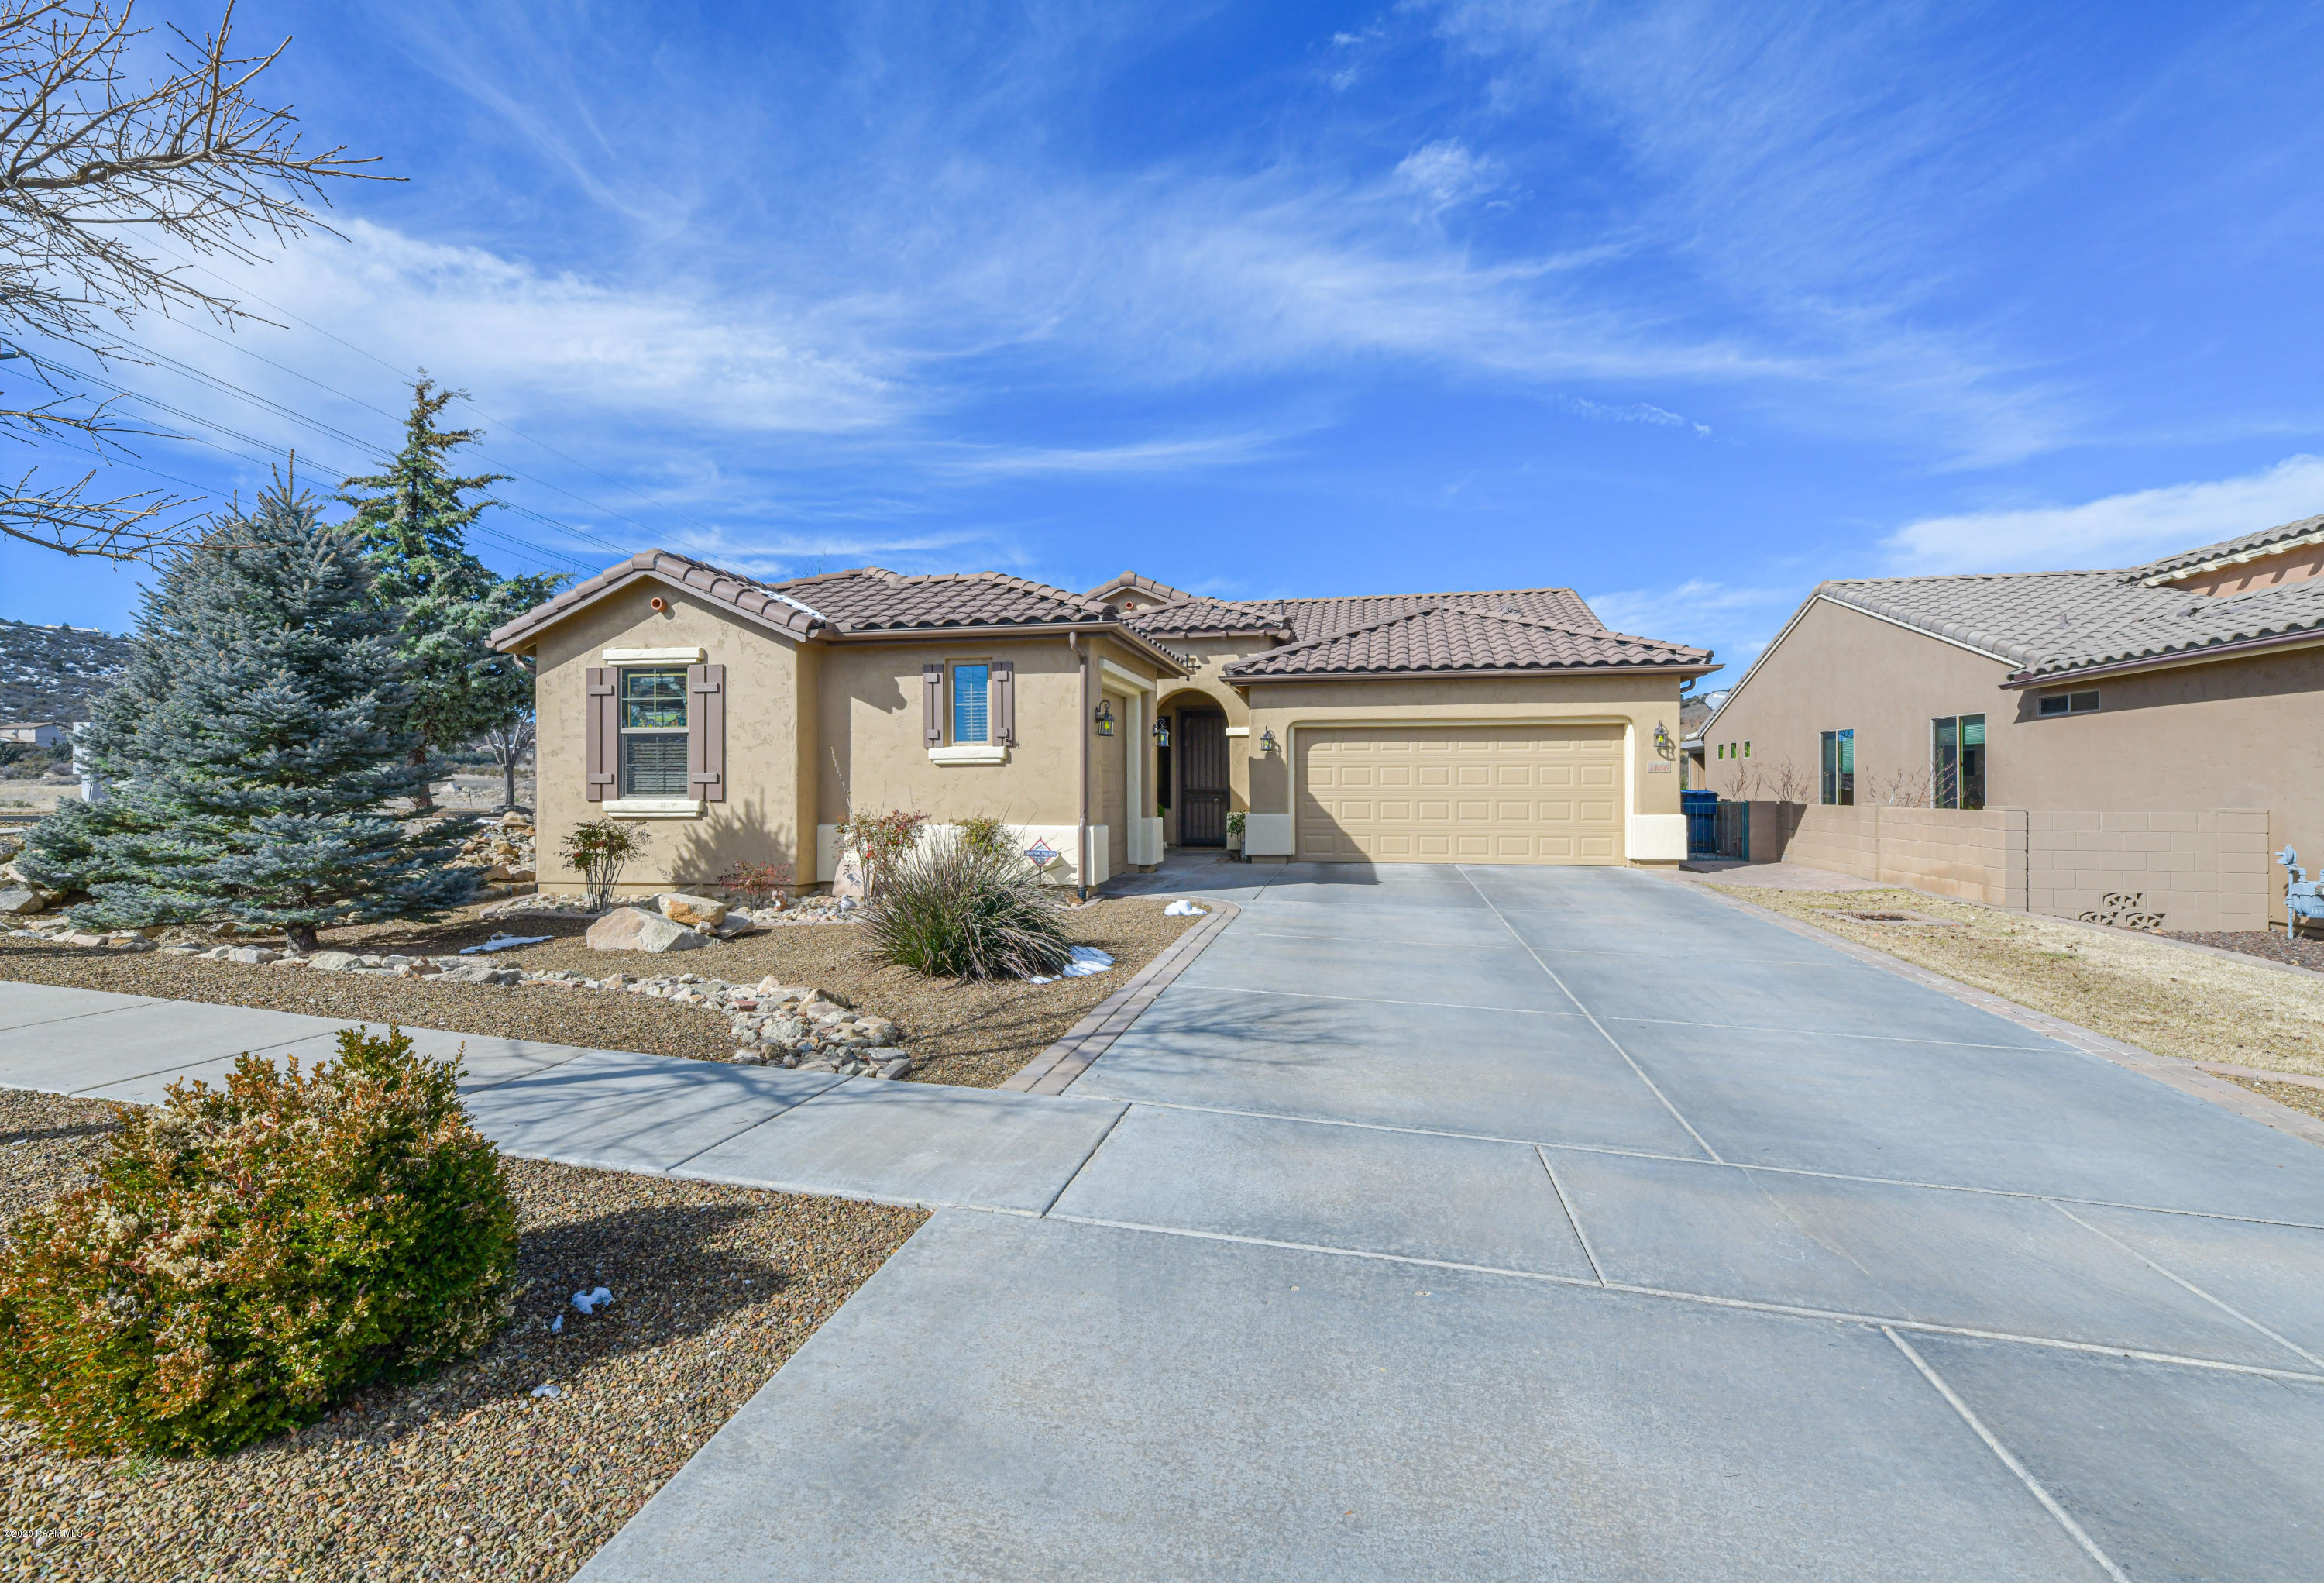 1106 N Buggy Barn Road 86314 - One of Prescott Valley Homes for Sale